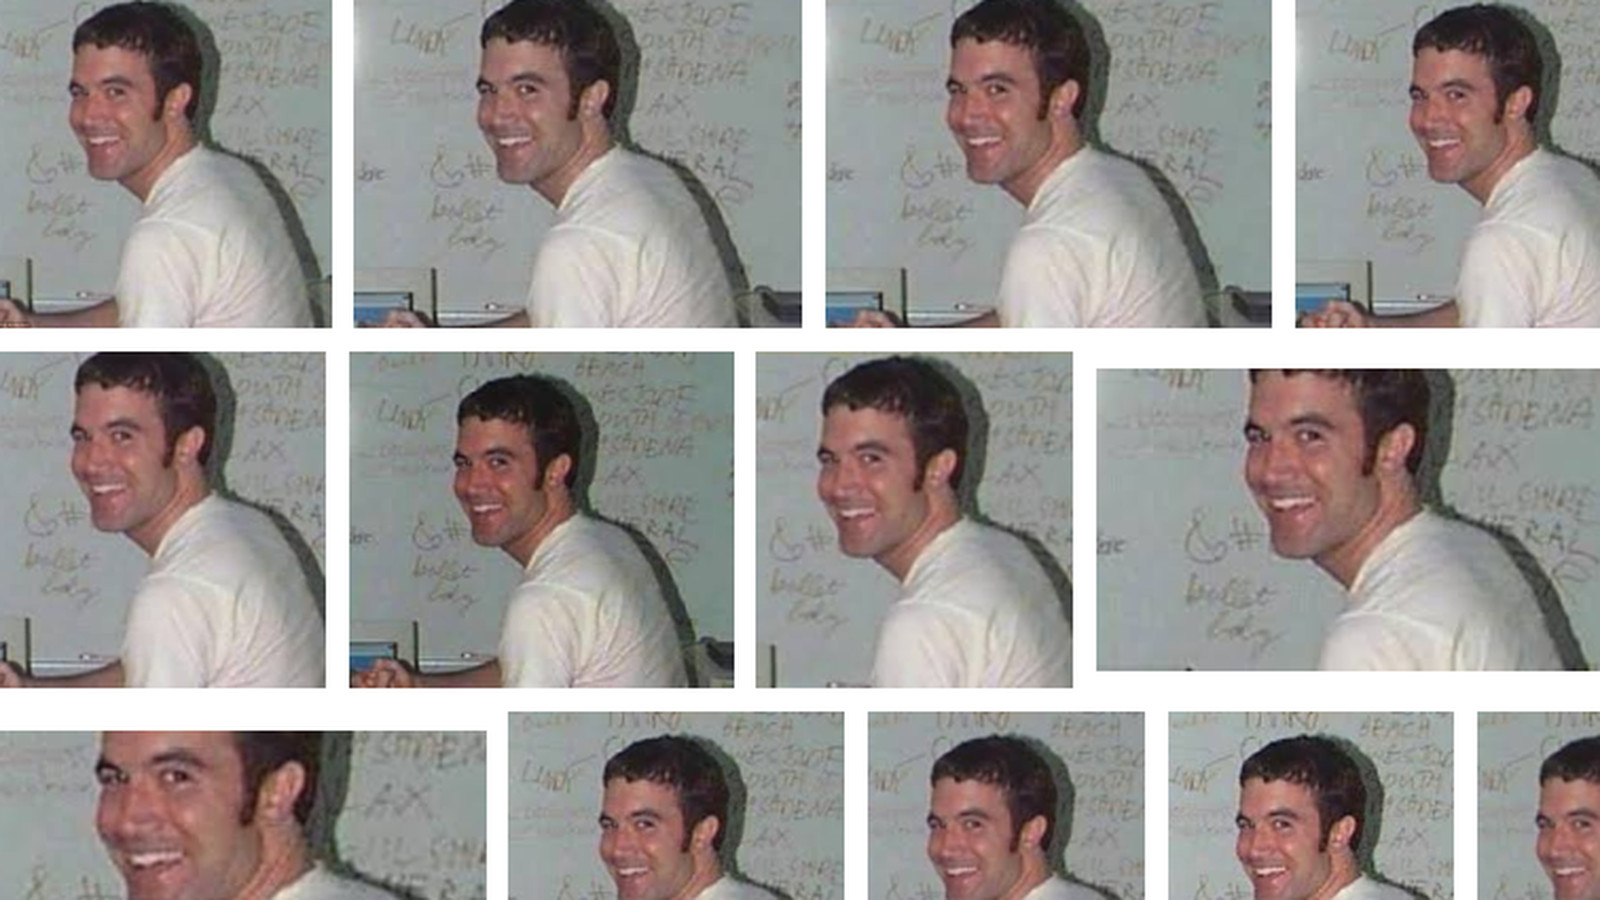 photo image The enduring portrait of Myspace Tom, the Mona Lisa of profile pictures